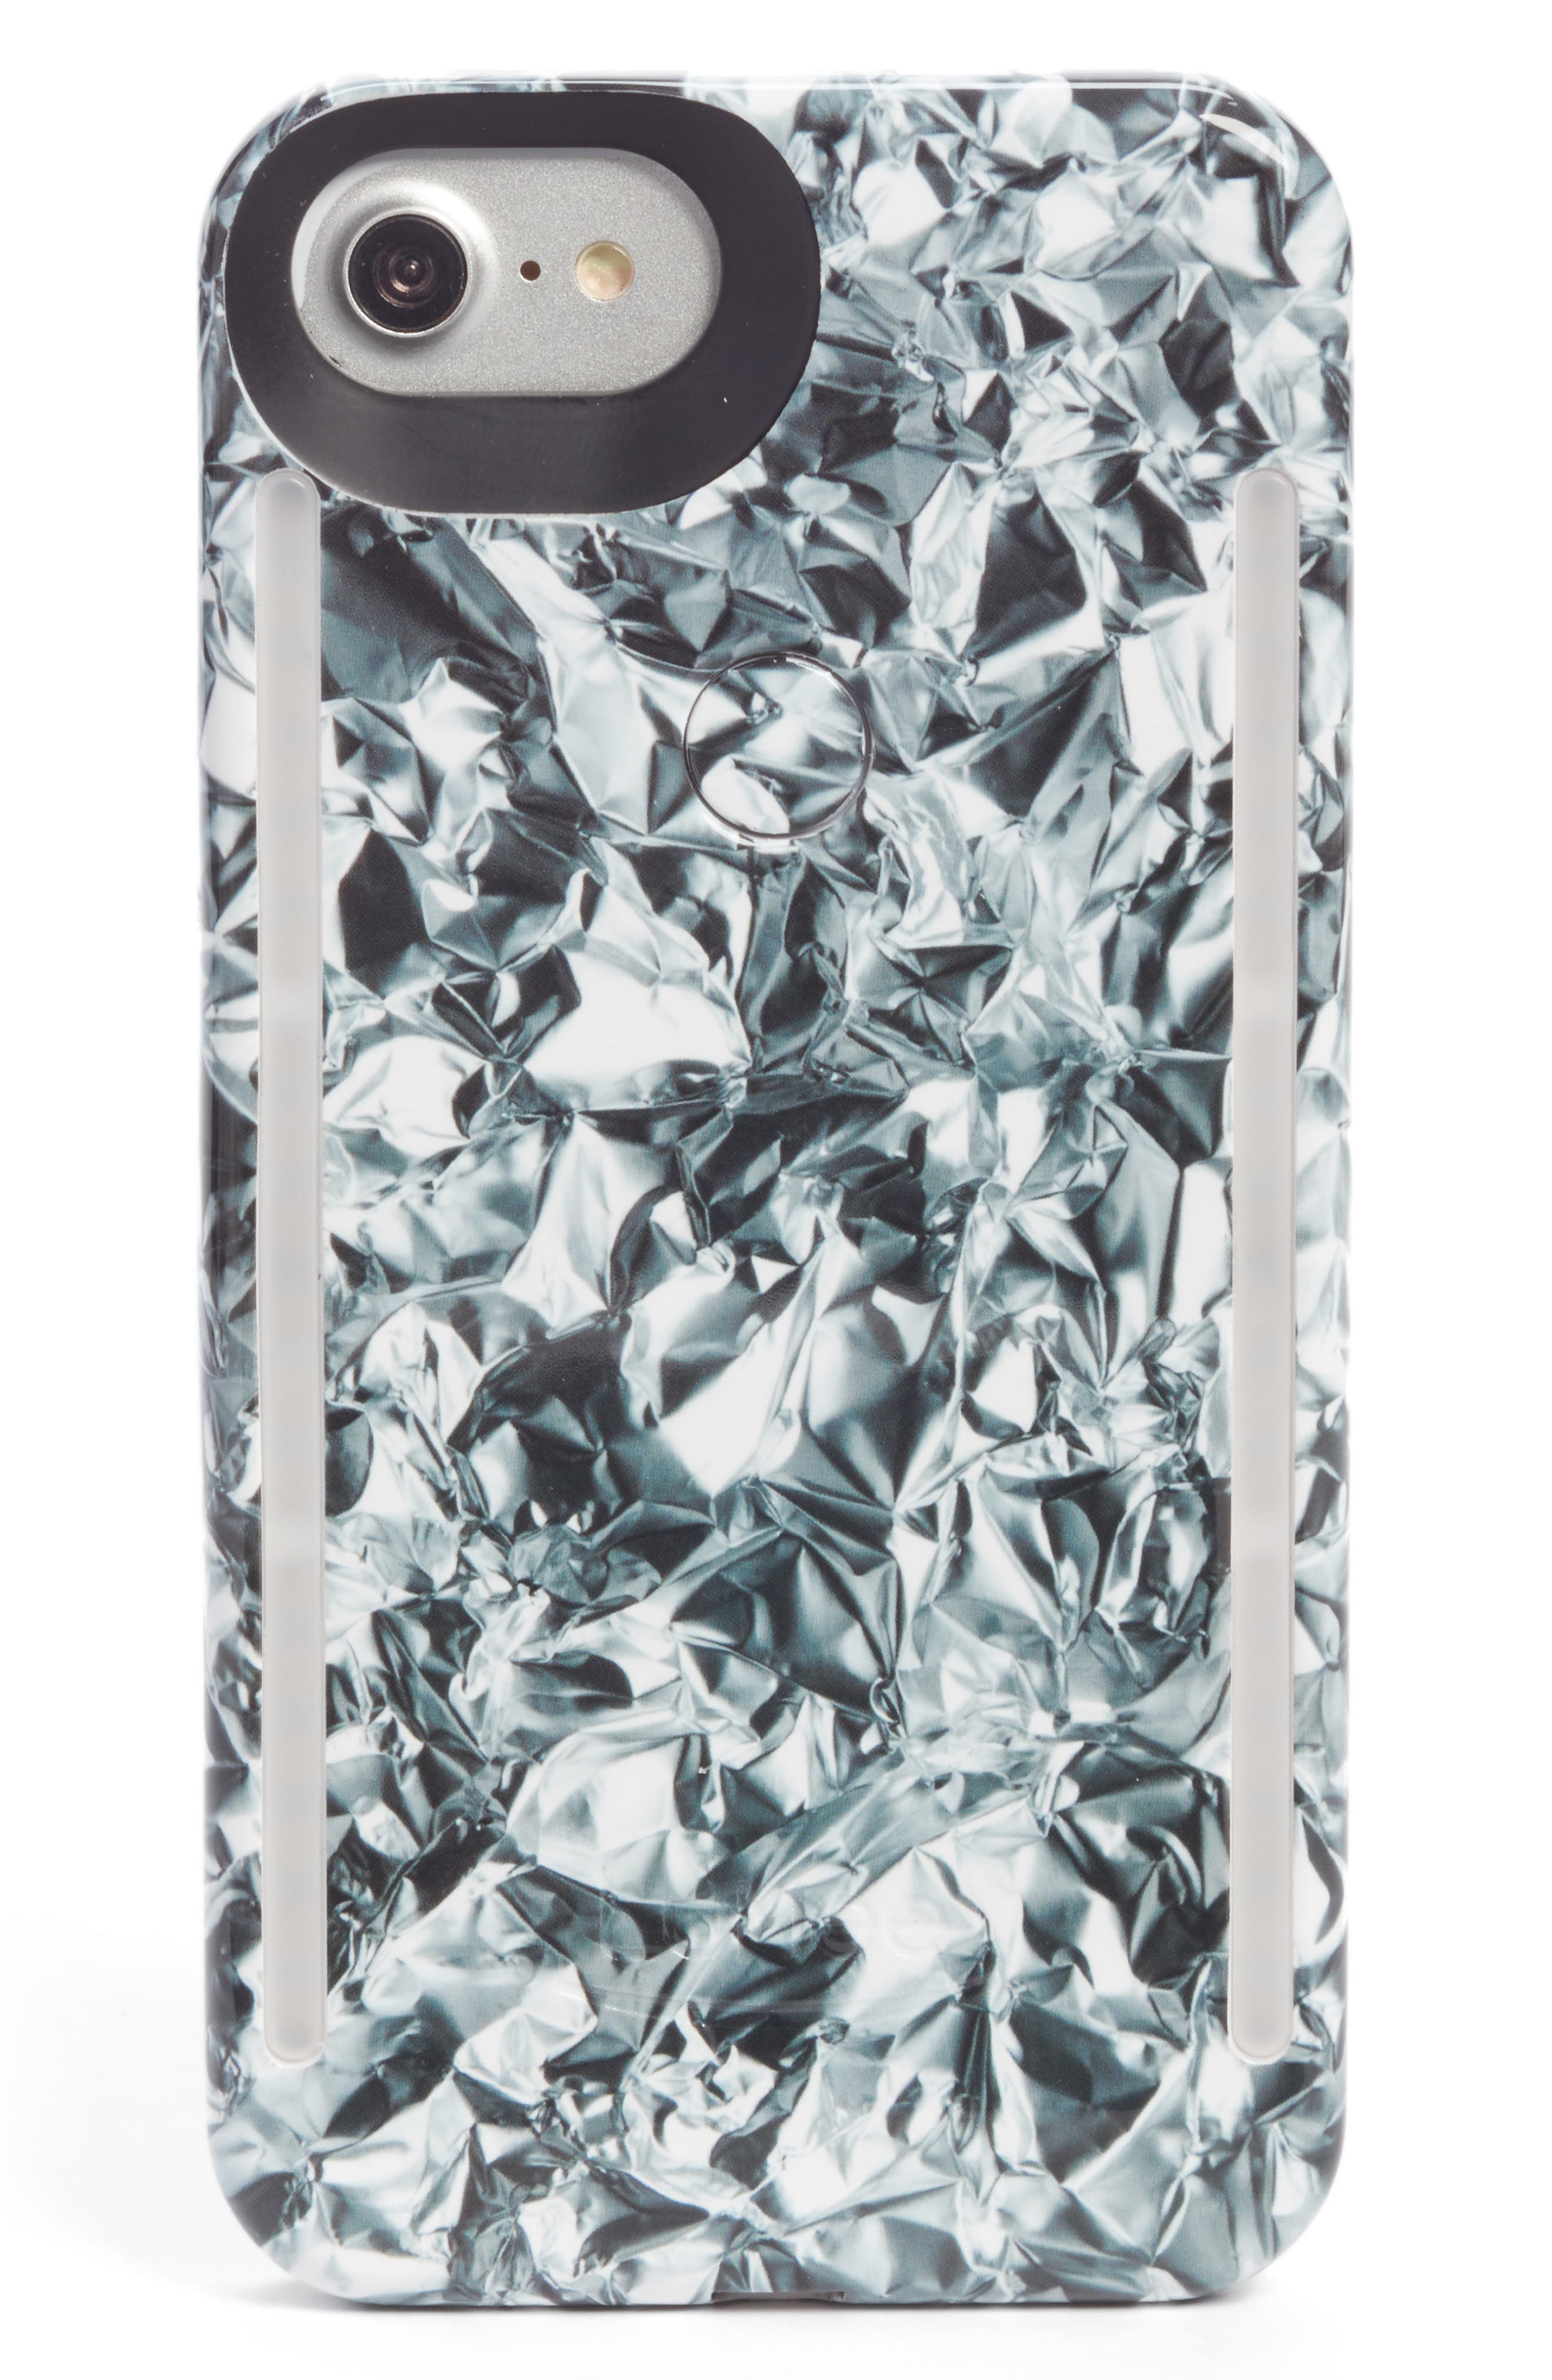 Main Image - LuMee Duo LED Lighted iPhone 6/6s/7/8 & 6/6s/7/8 Plus Case (Nordstrom Exclusive)